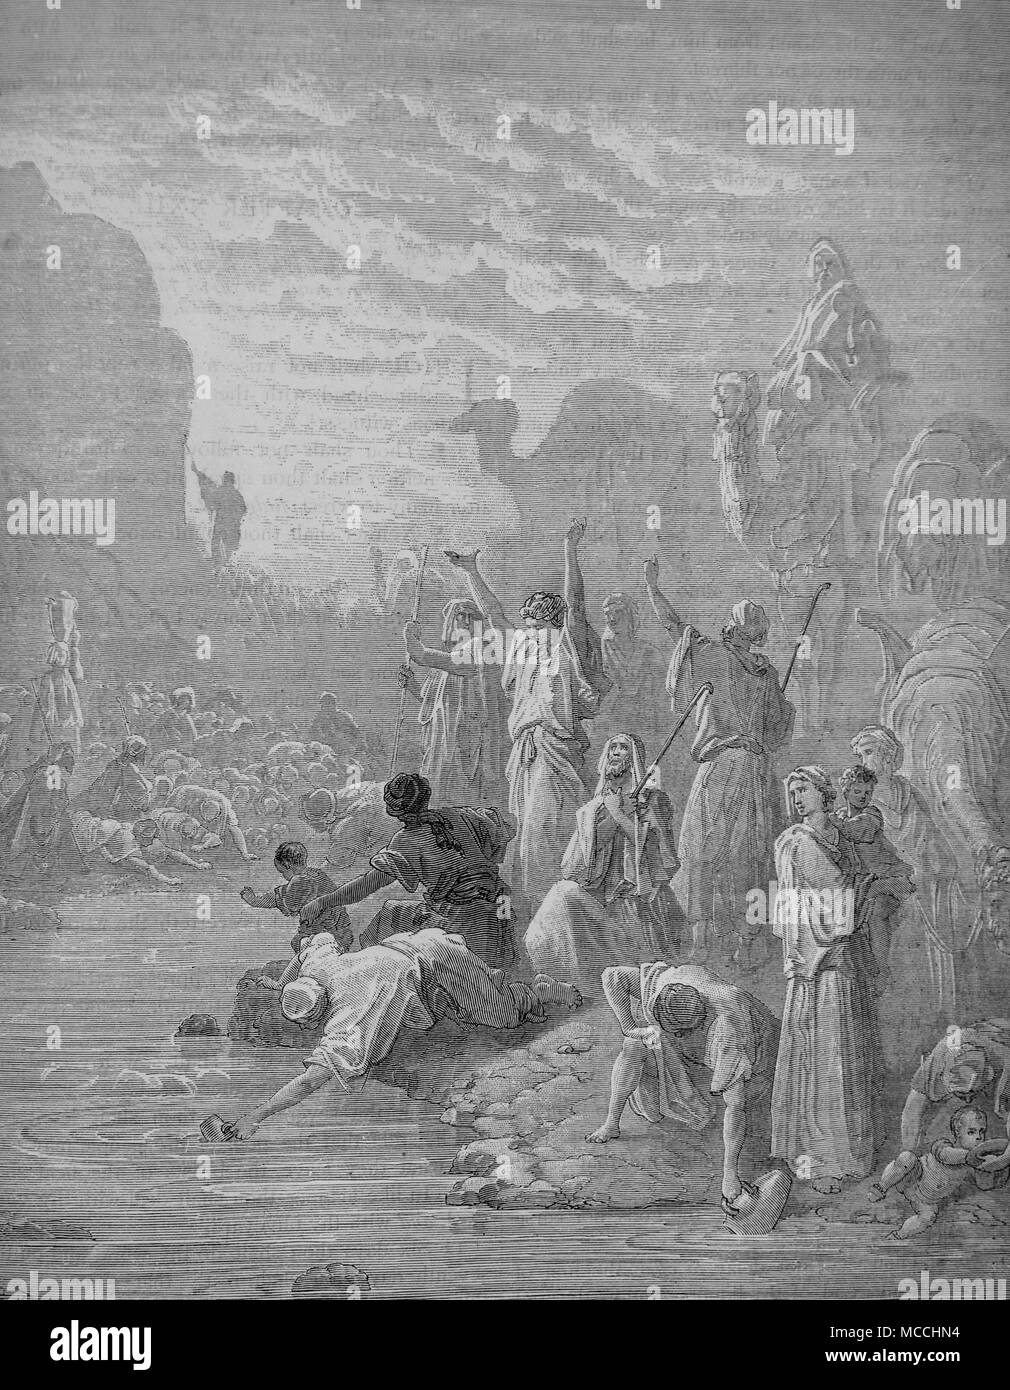 Moses striking the rock in Horeb. Bible illustration by Gustave Doré. - Stock Image